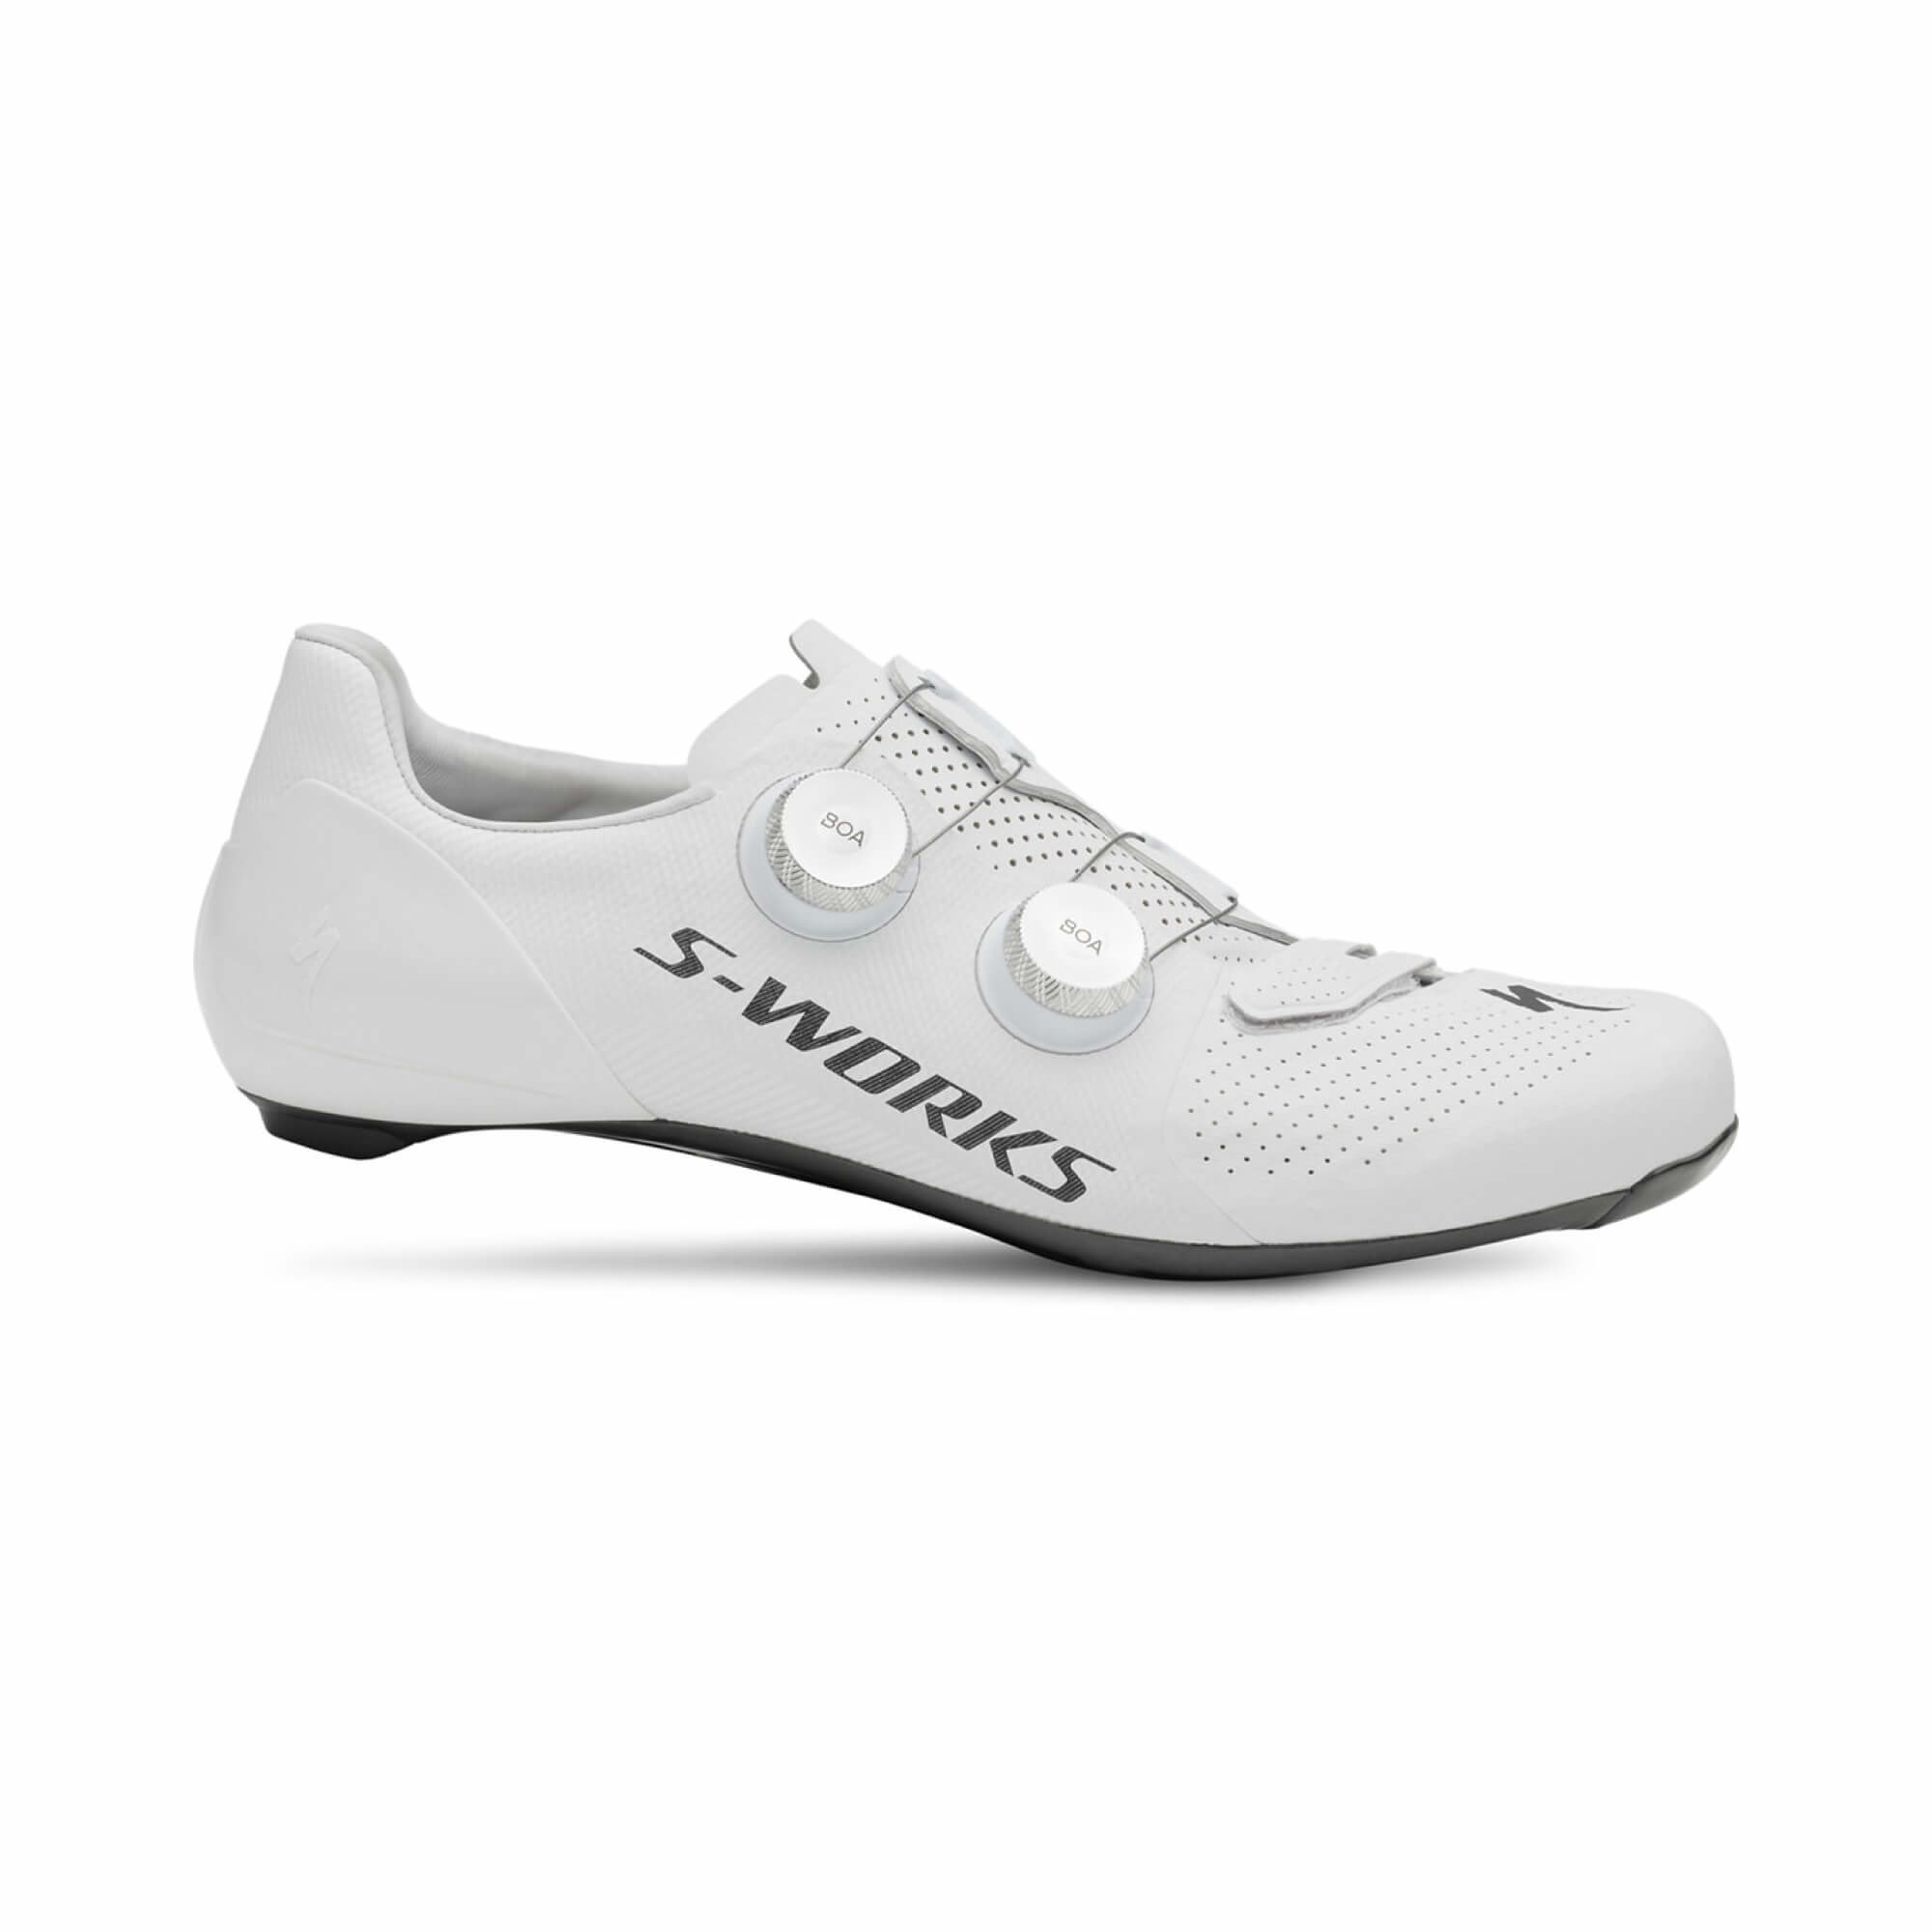 S-Works 7 Road Shoe-11